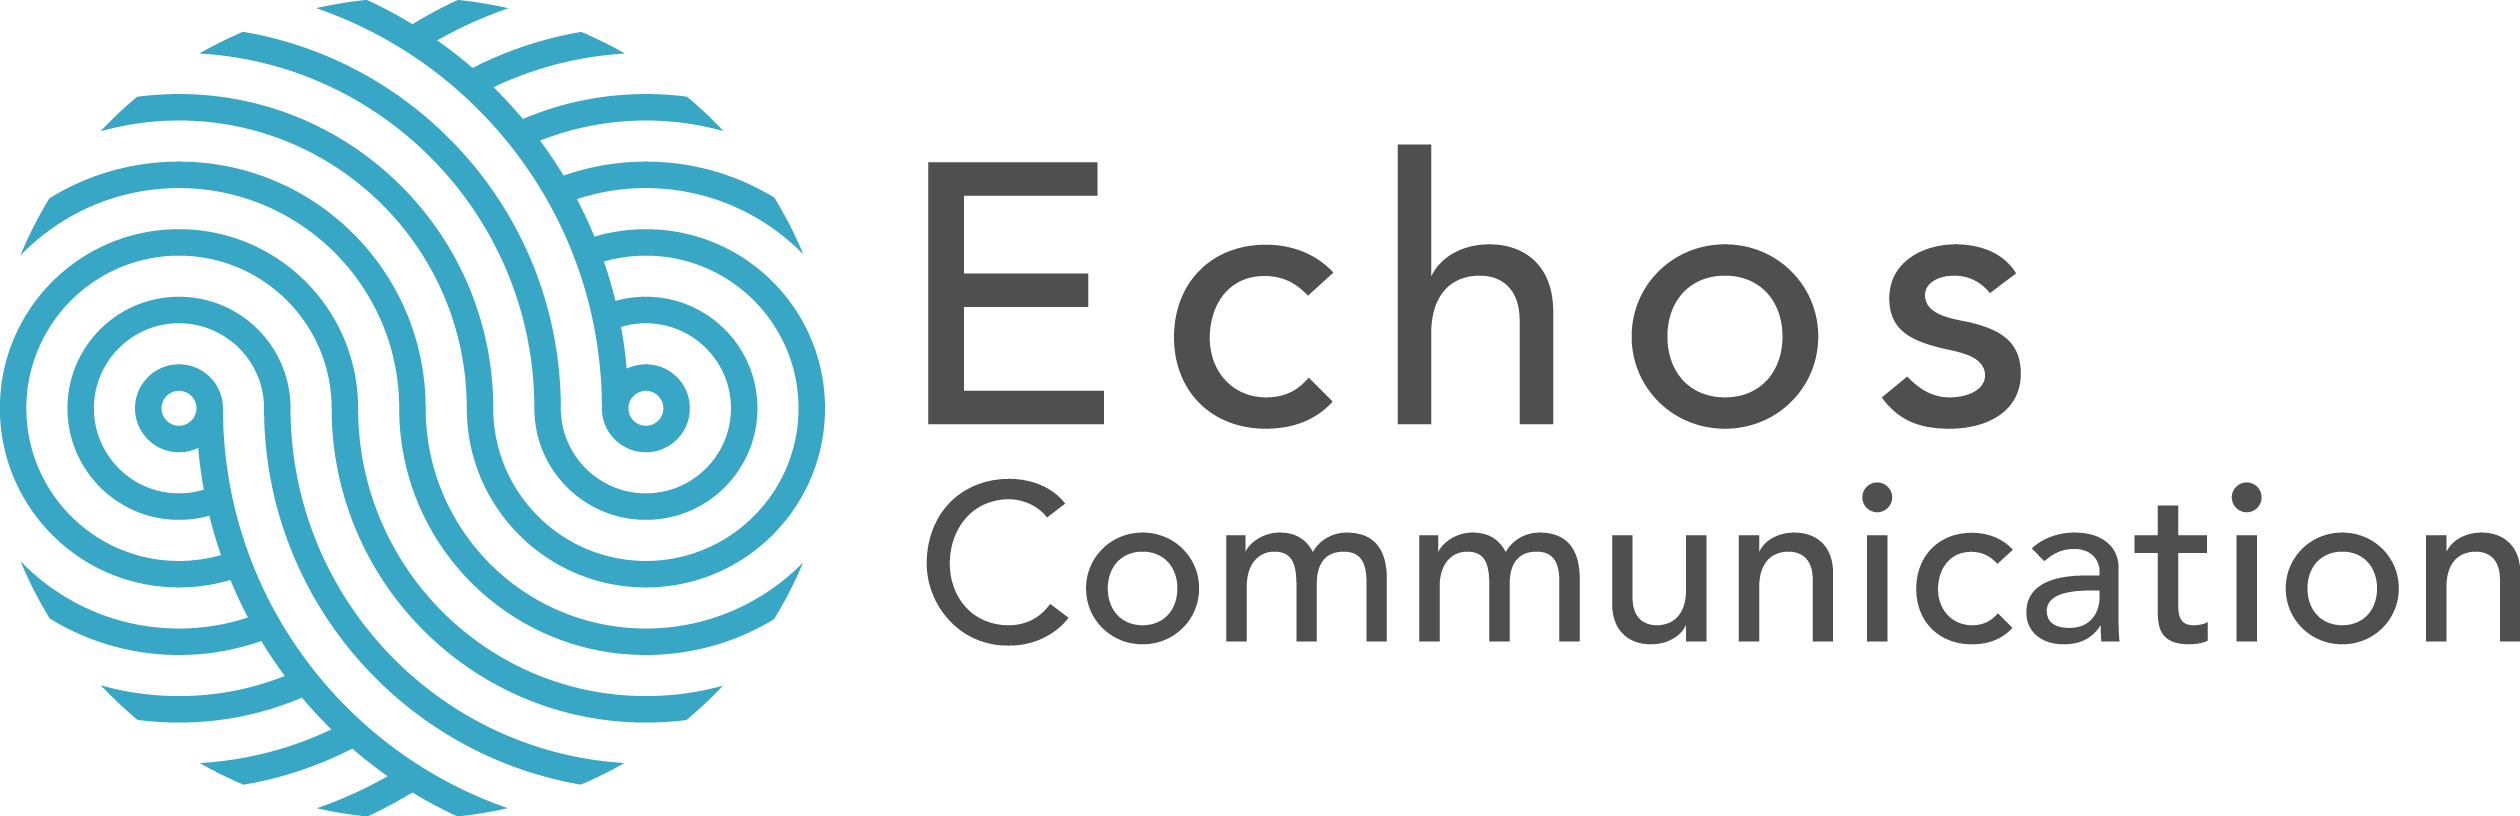 Logotype Echos Communication